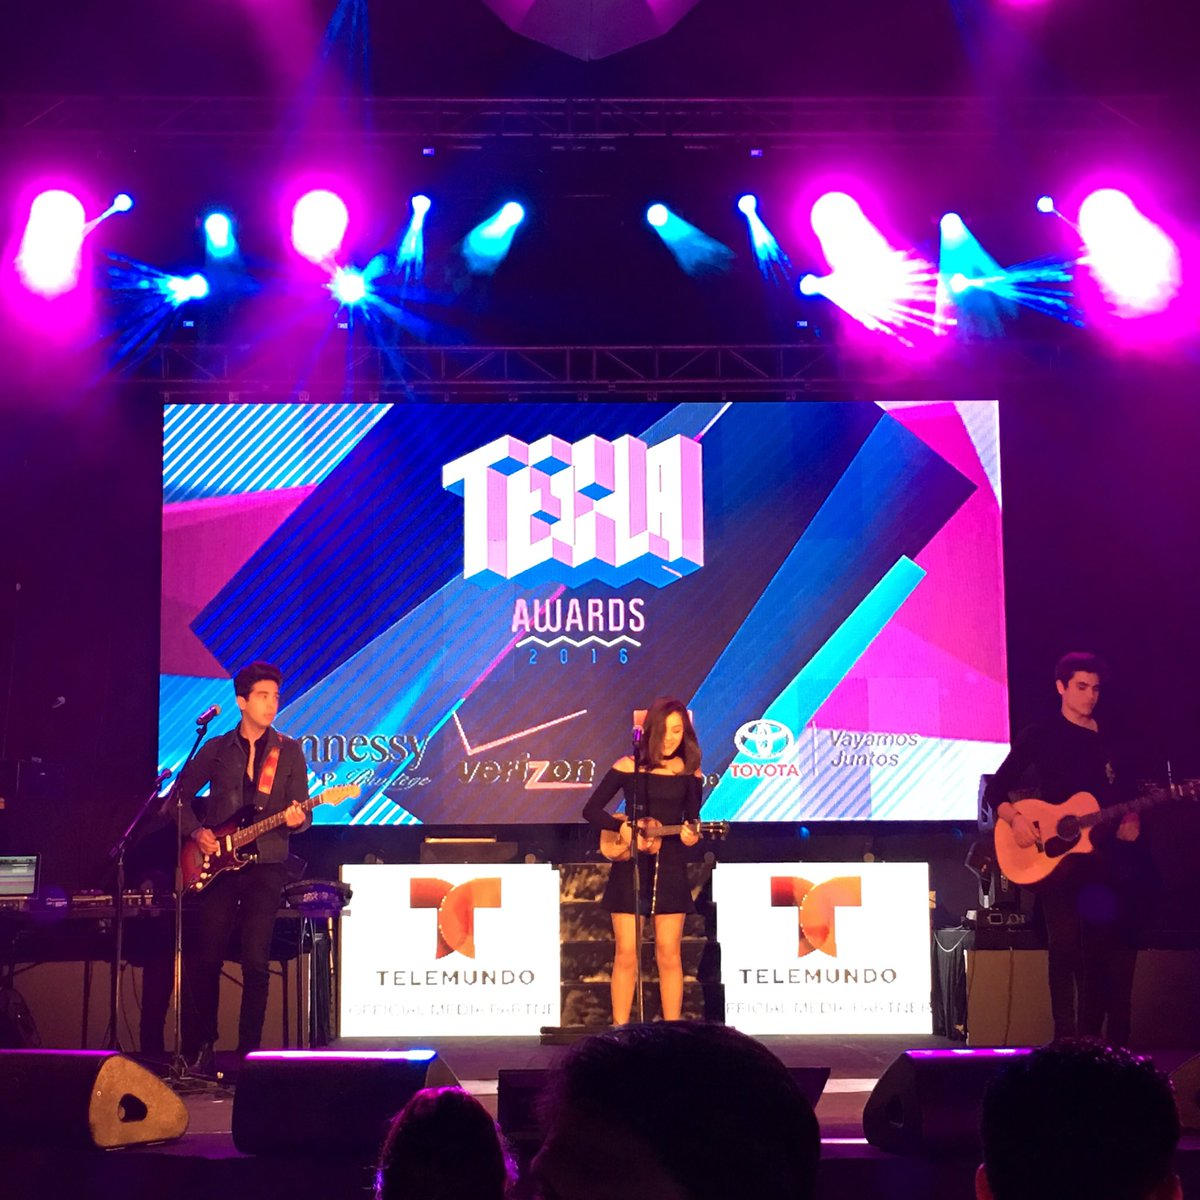 #TeclaAwards are underway! @VazquezSounds on stage now! #Hispz16 https://t.co/cpyLZmc3Ou